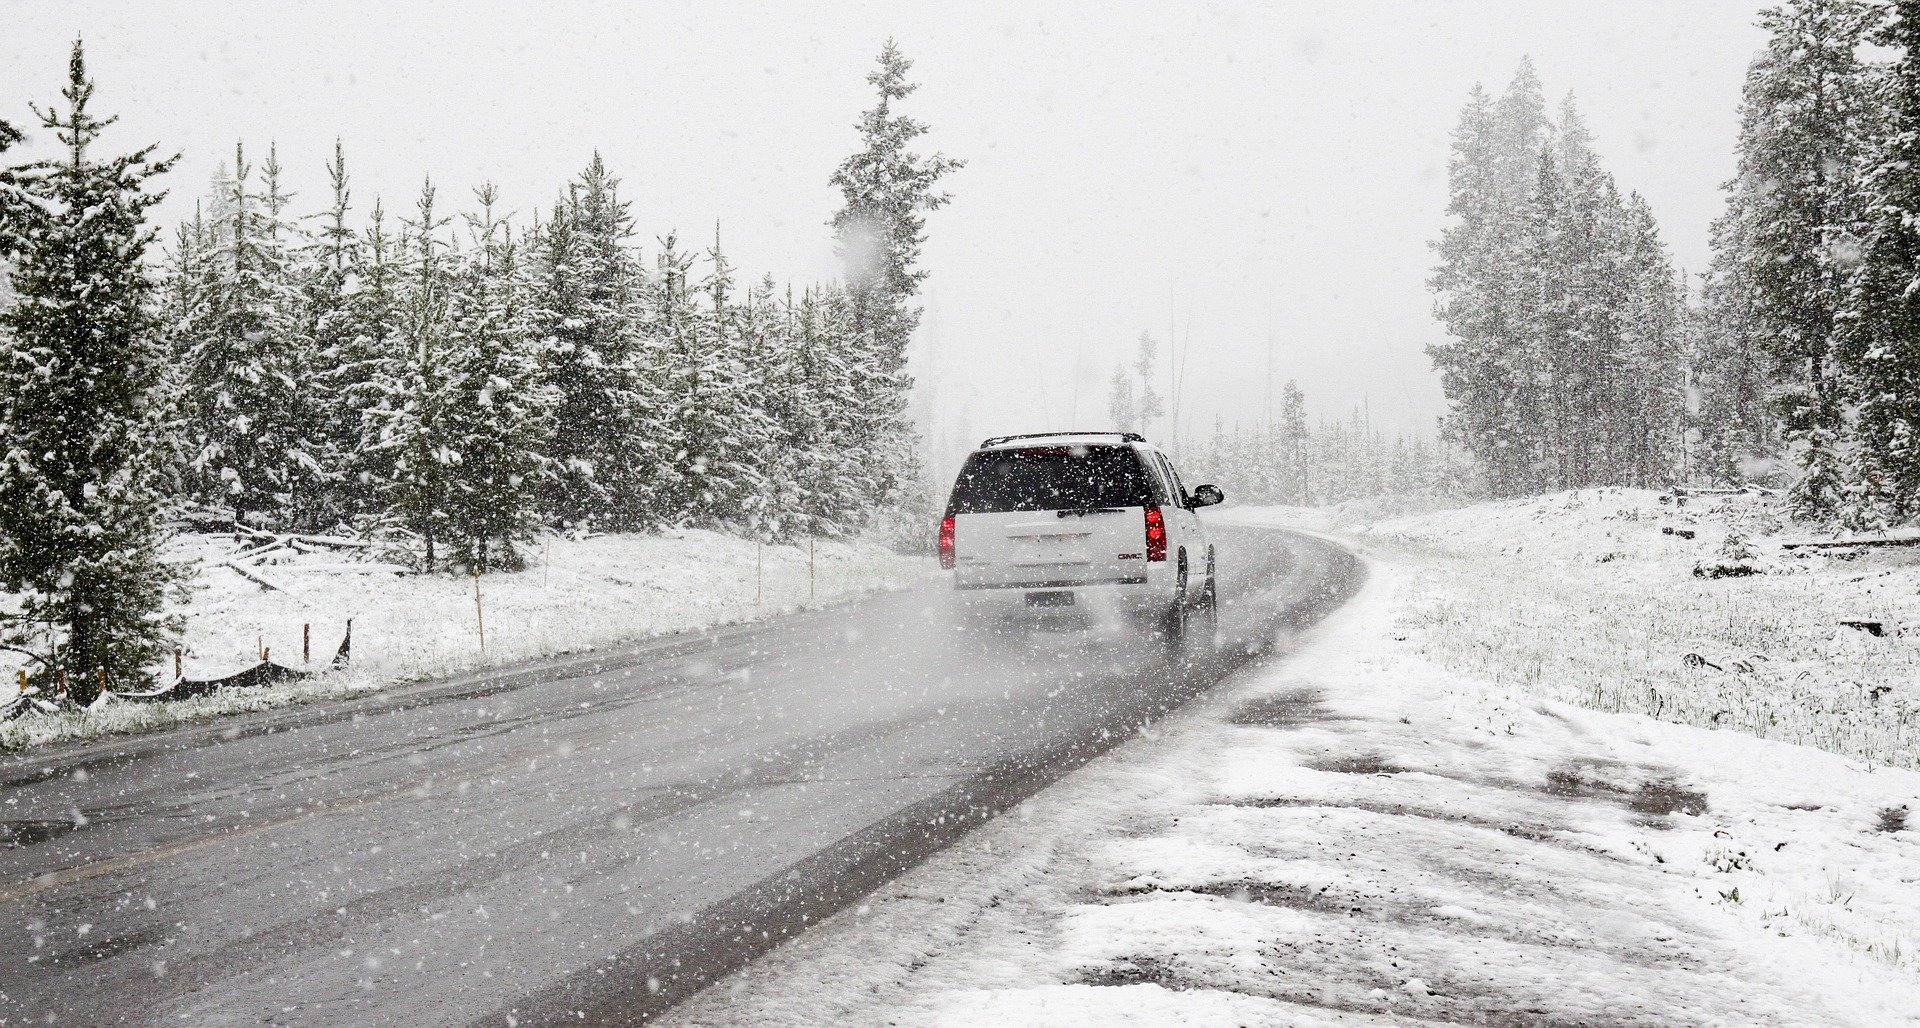 10 Best Cars for Snow: Keep Your Family Safe